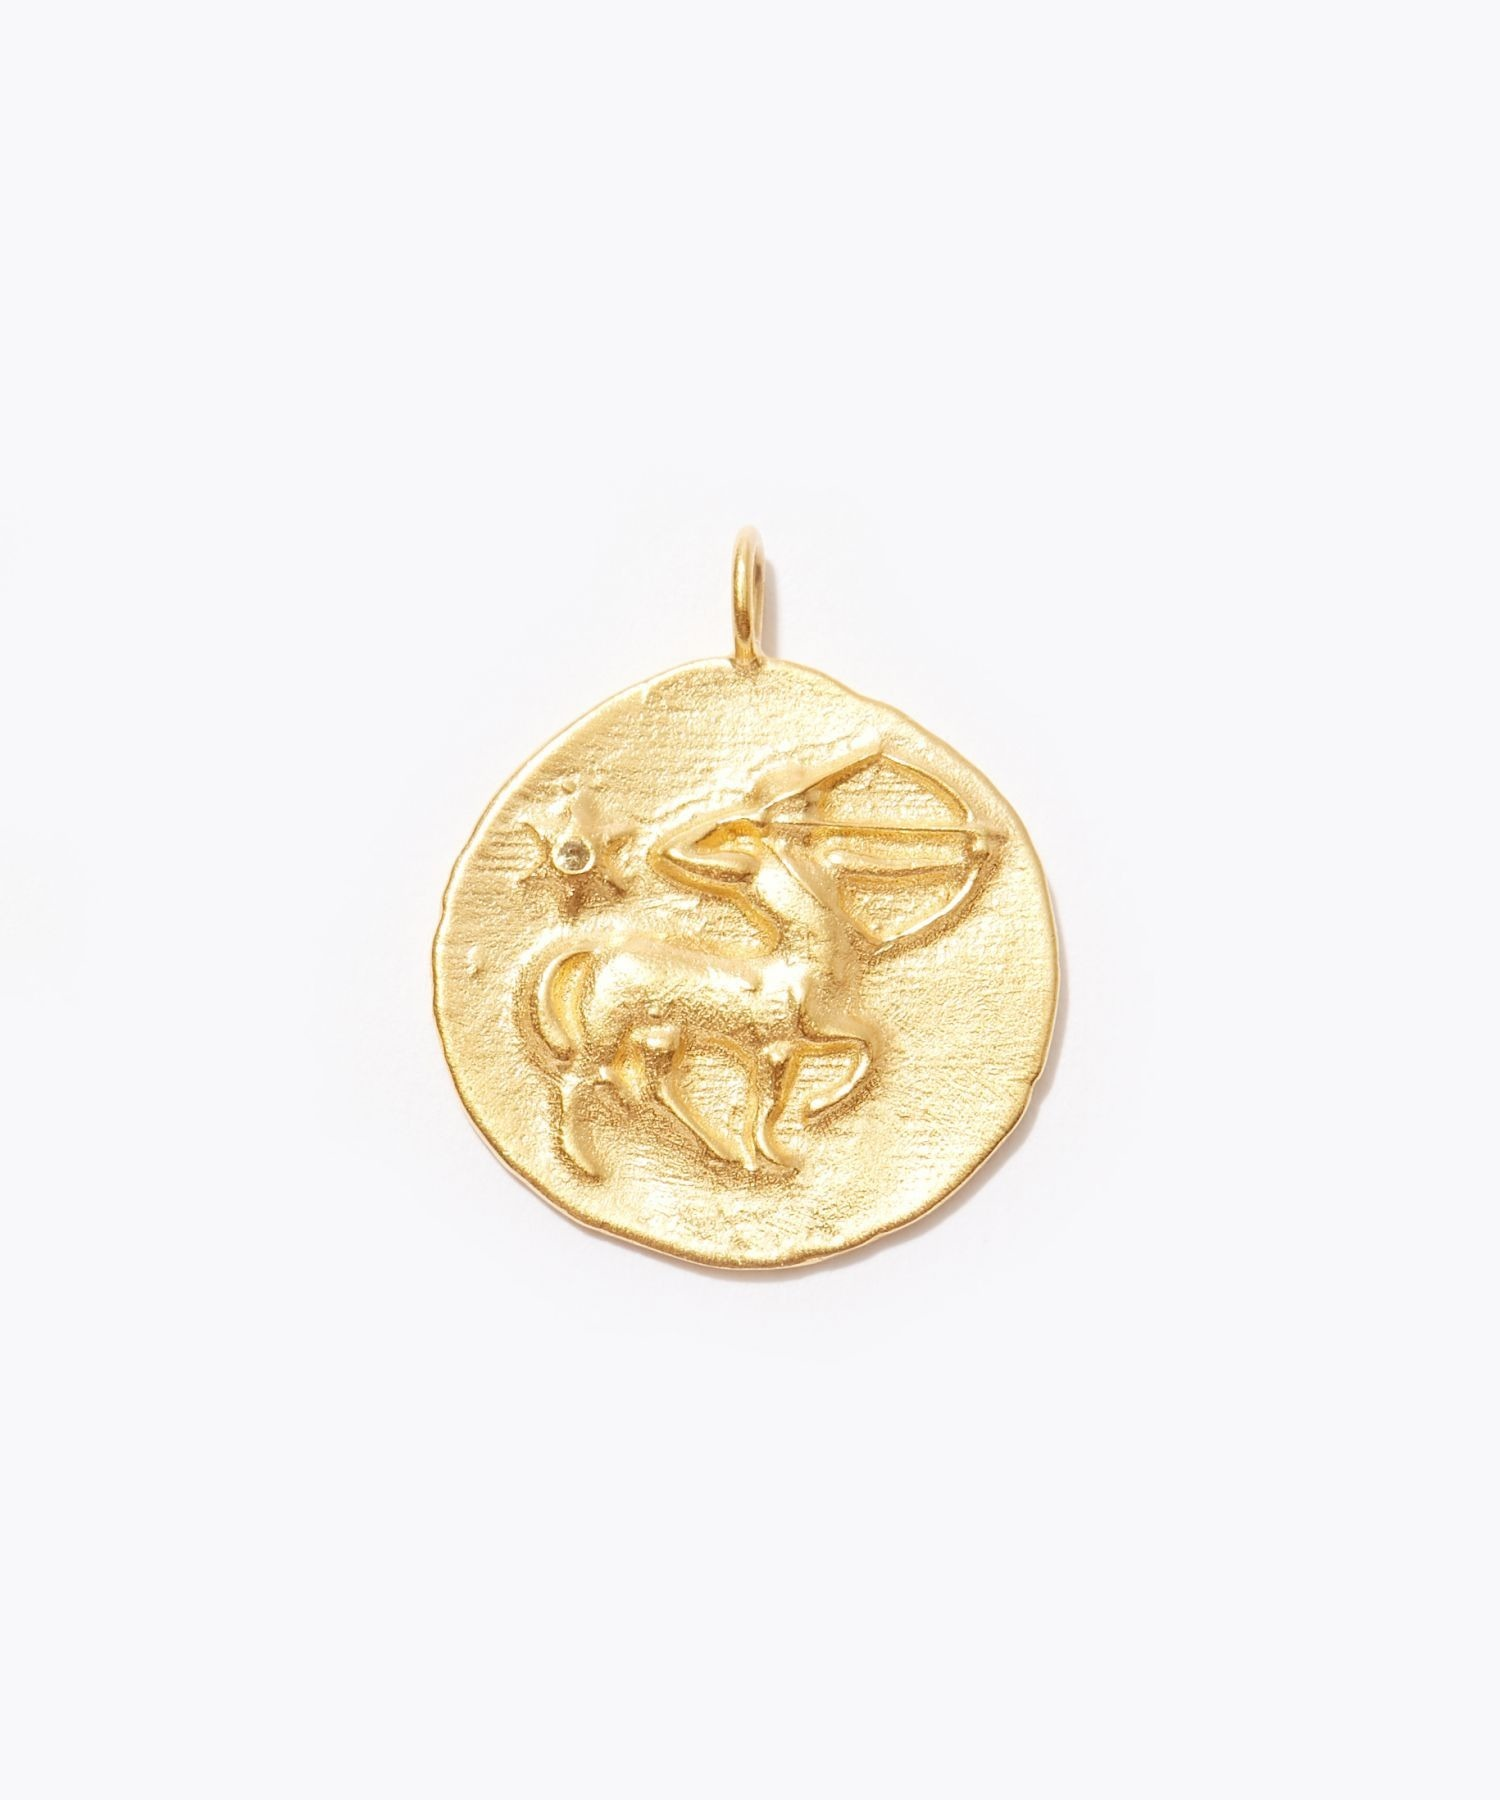 [constellation] Sagittarius big coin charm